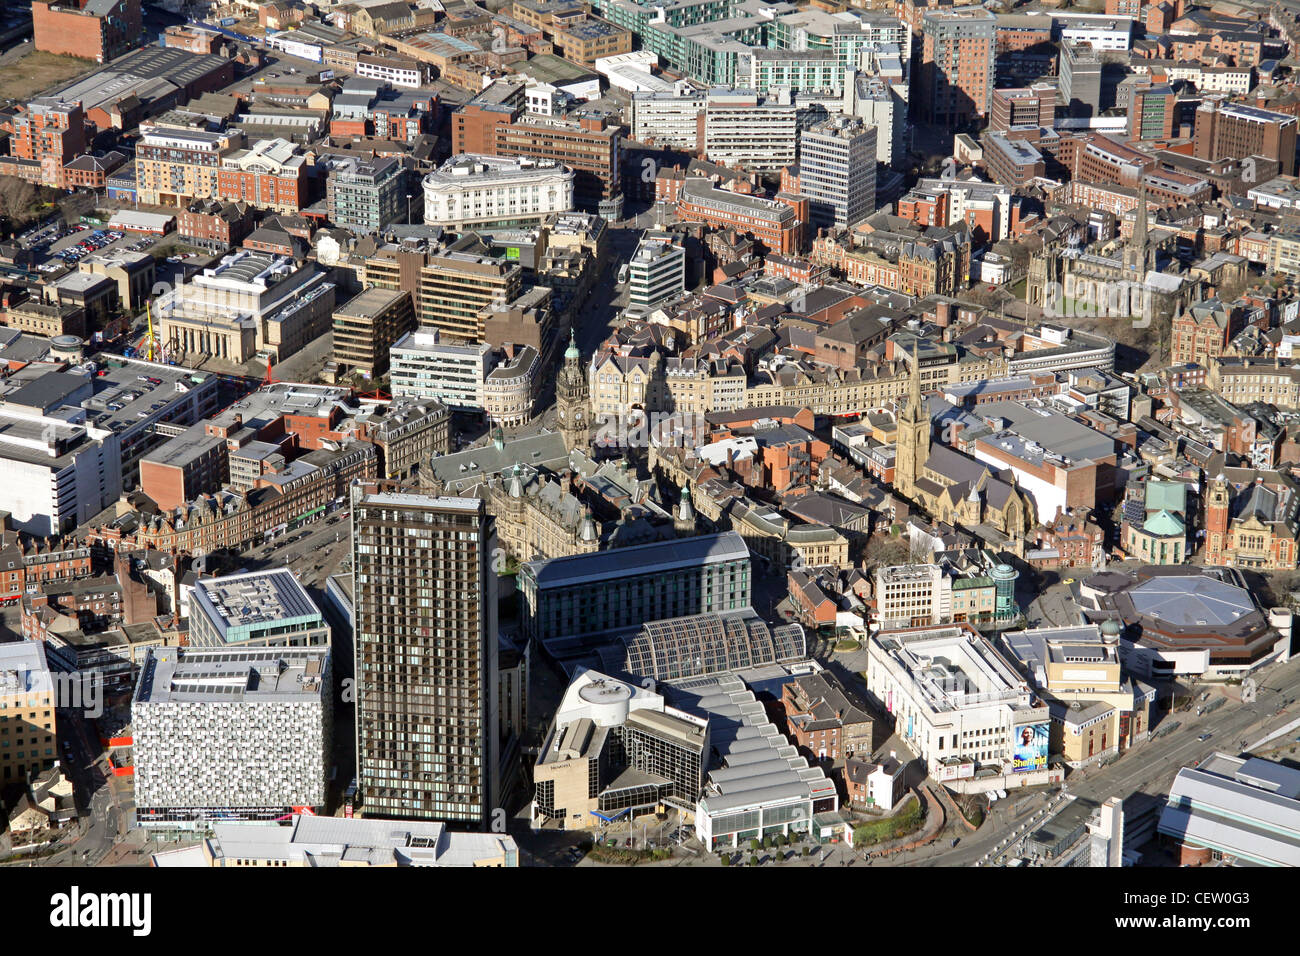 Aerial image of Sheffield City Centre - Stock Image